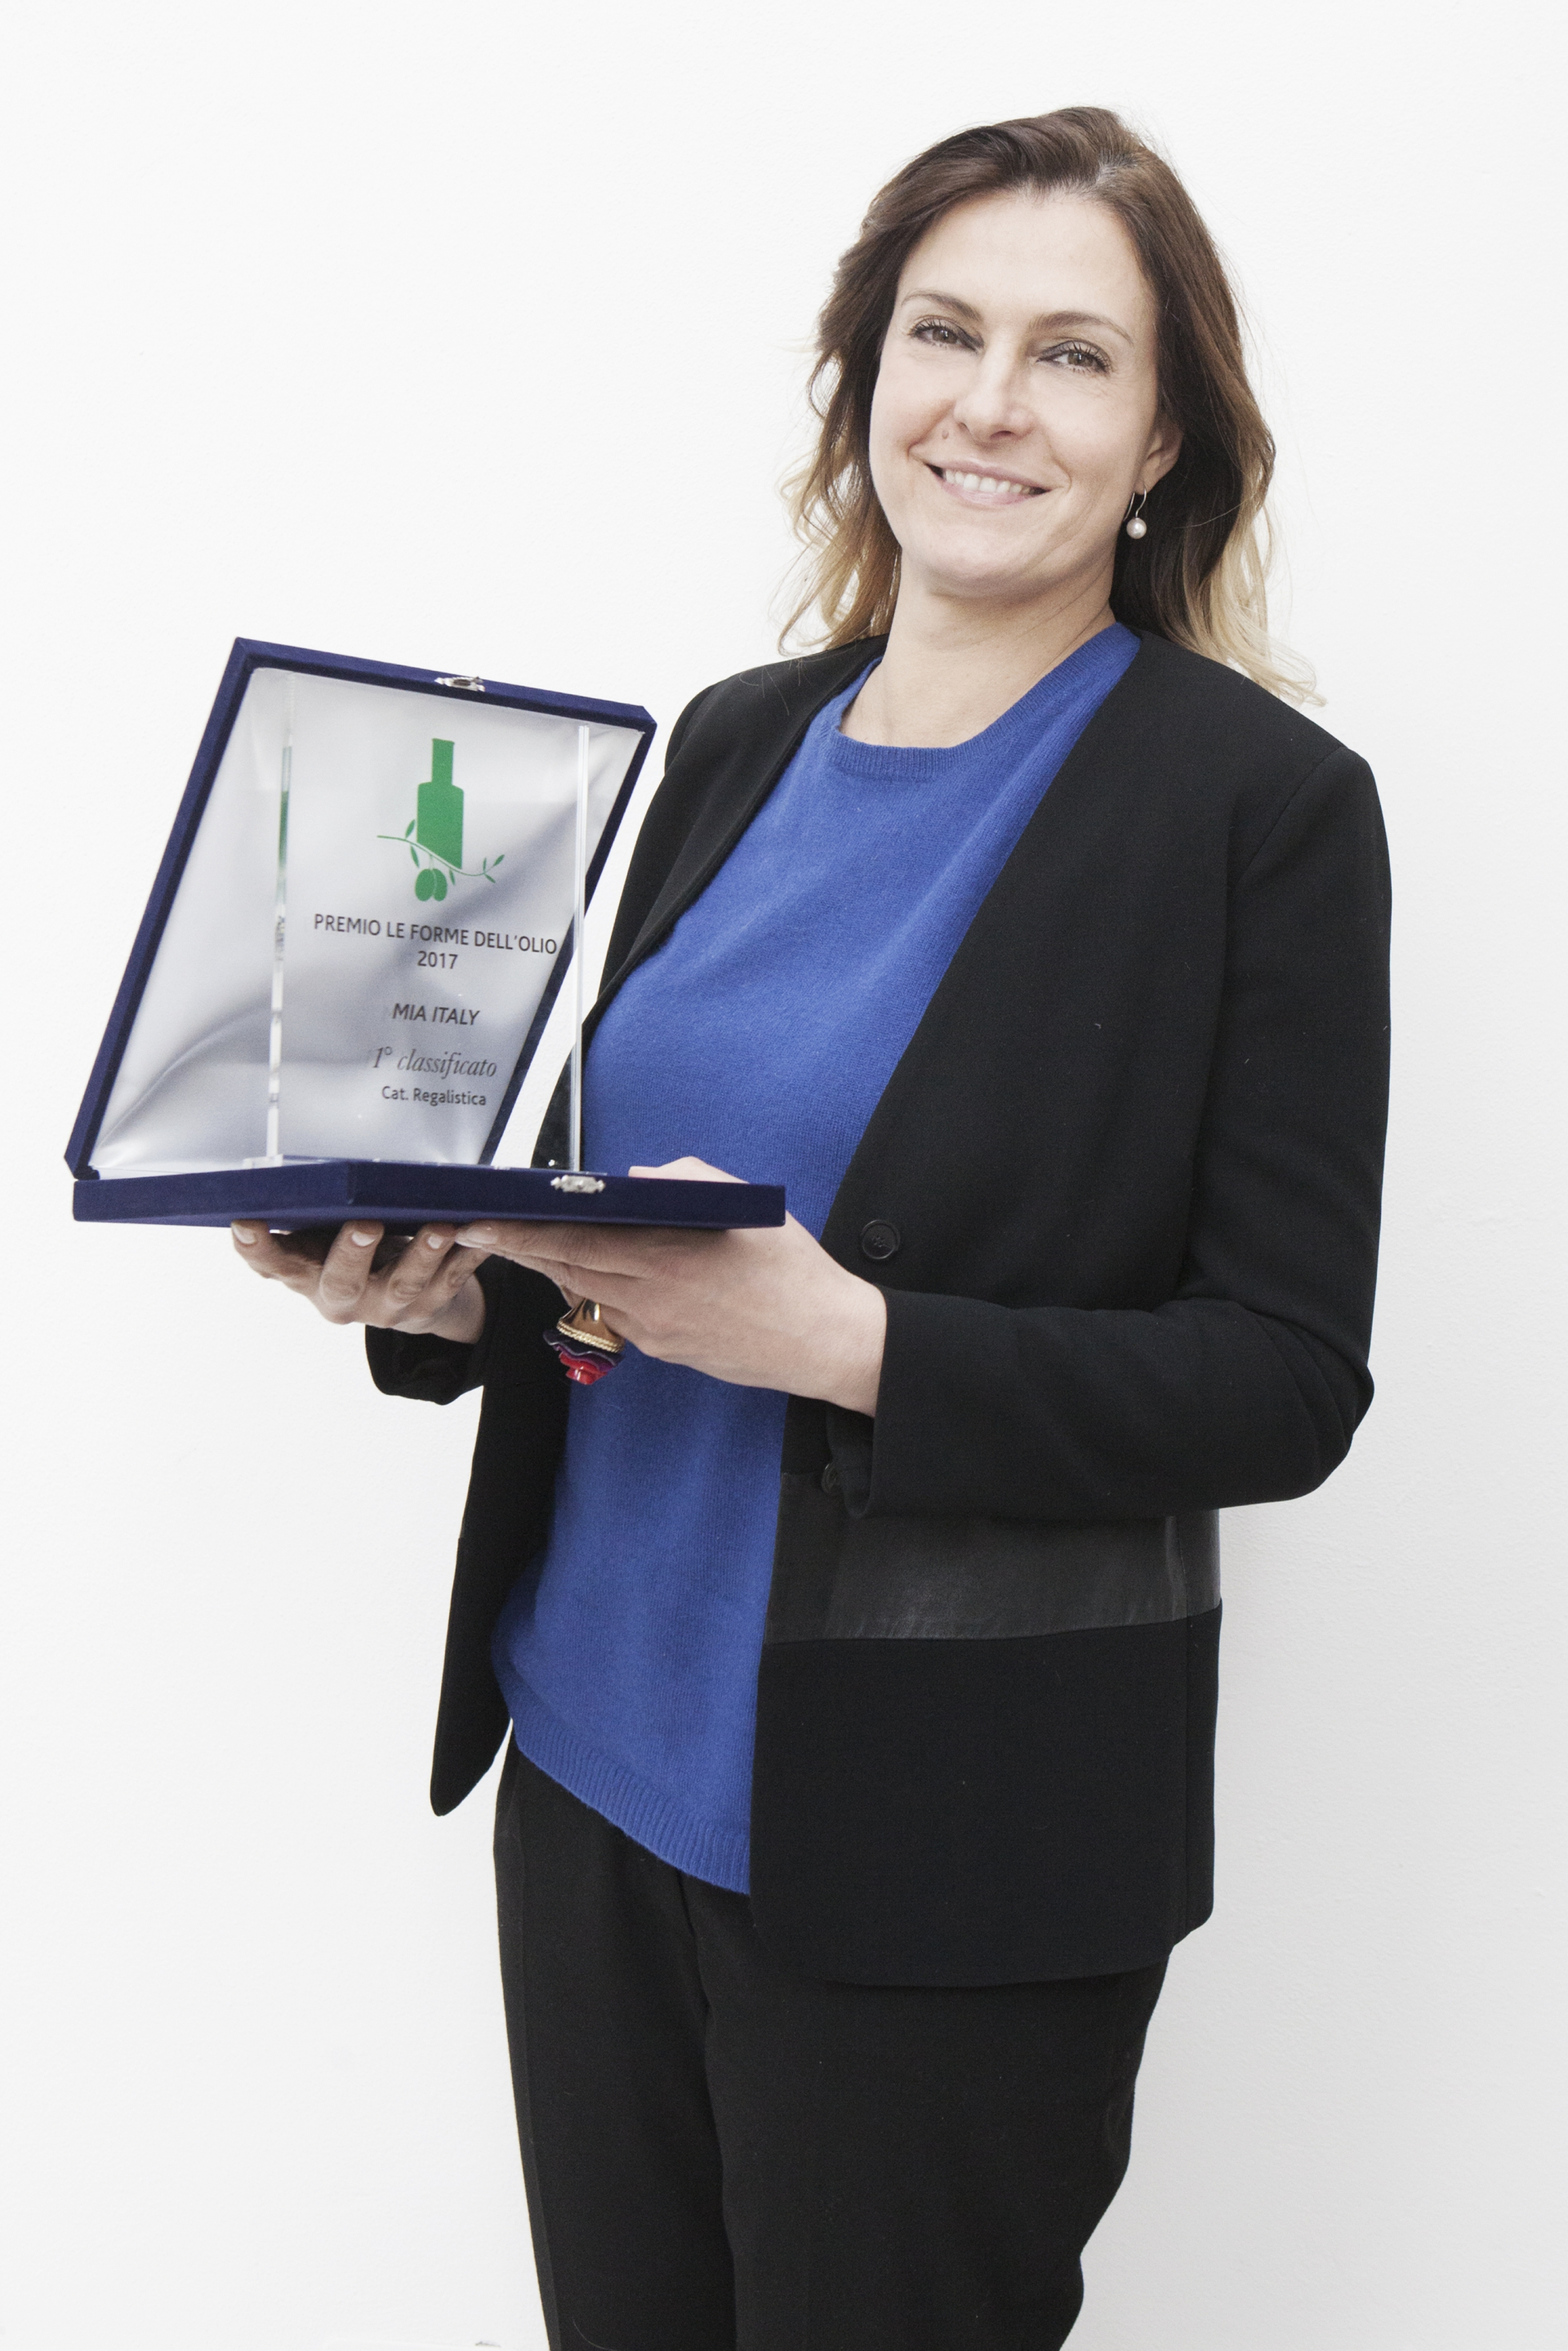 The fifth edition of the Le forme dell'olio International Packaging and Innovation Contest